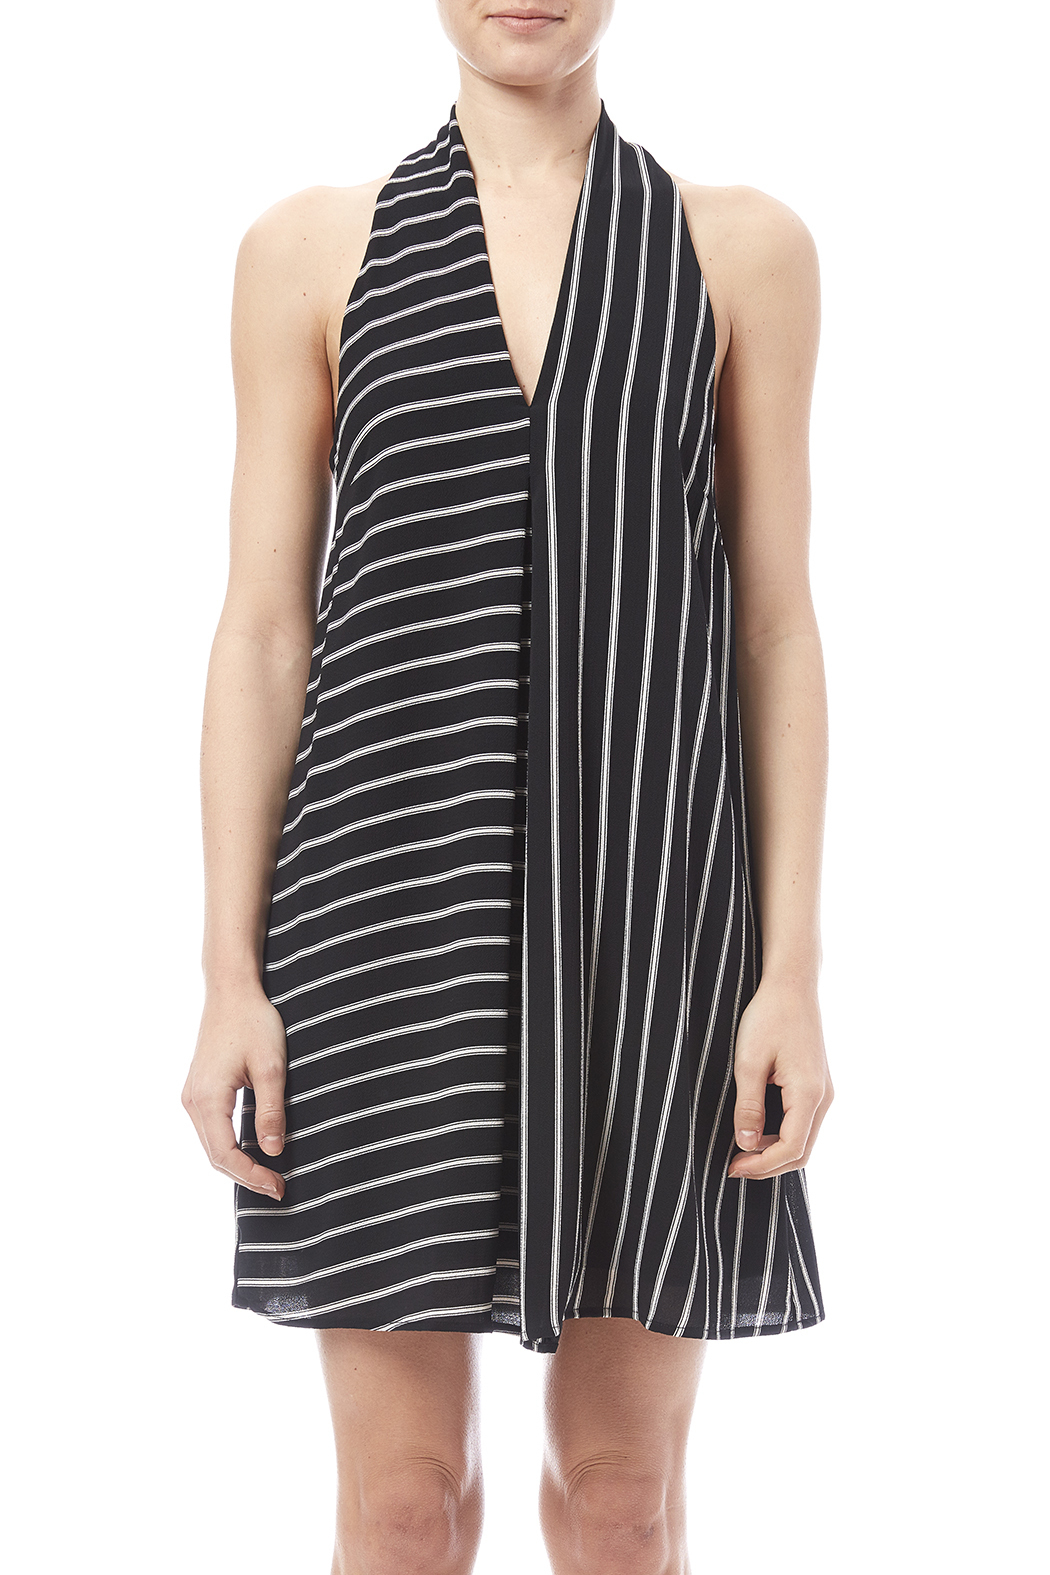 HYFVE Black And White Dress - Side Cropped Image